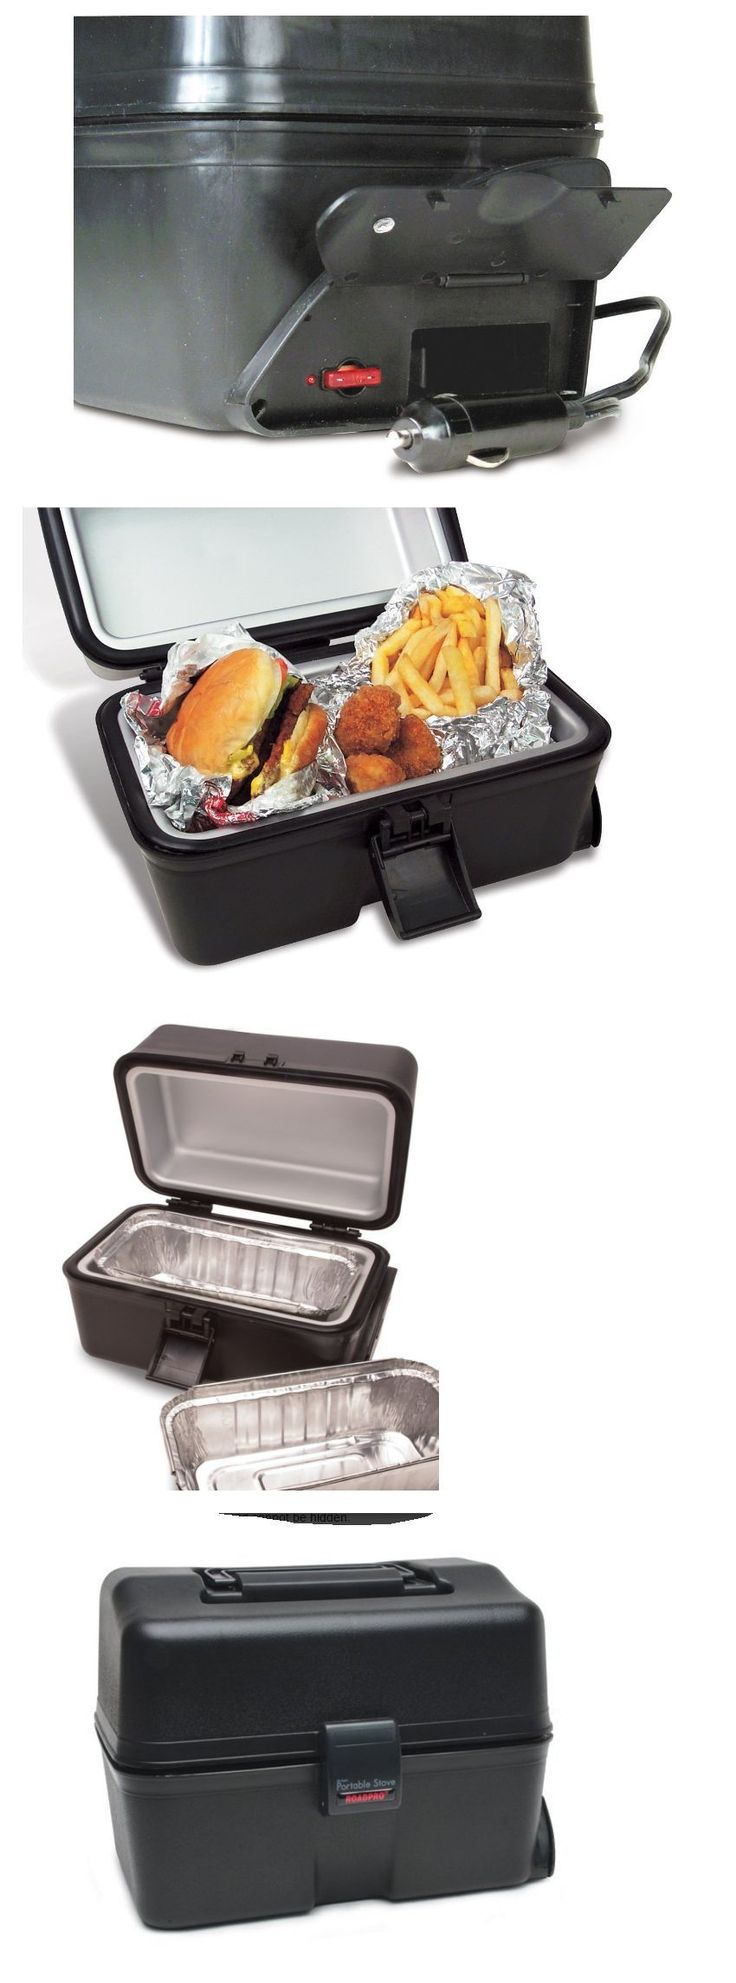 Portable Food Warmer Oven ~ Best ideas about portable stove on pinterest